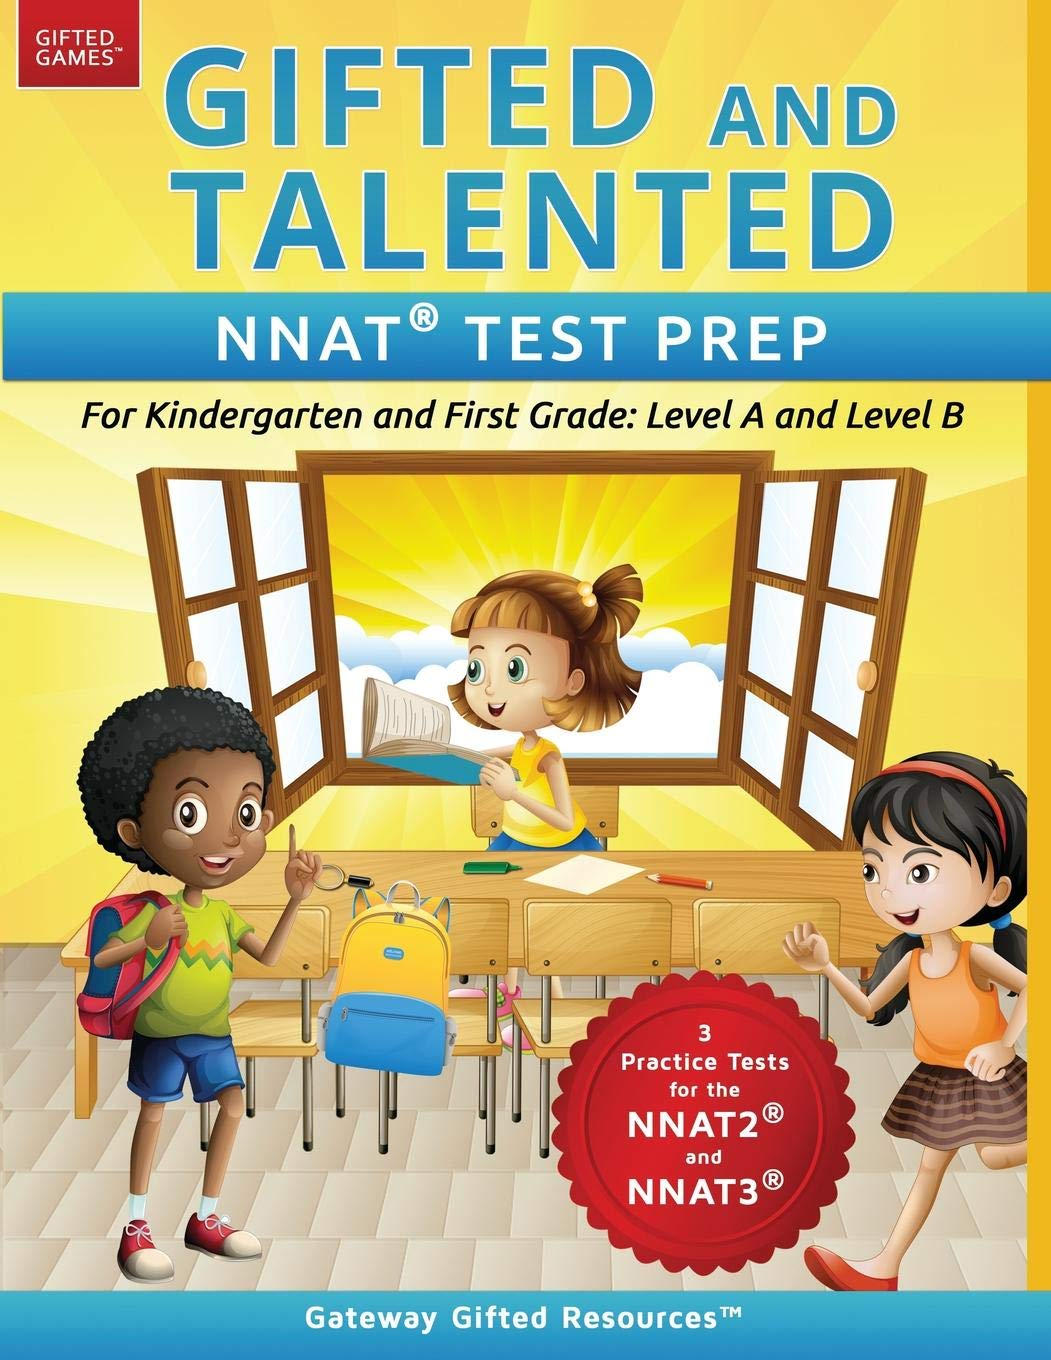 Who Are Gifted And Talented And What Do >> Amazon Com Gifted And Talented Nnat Test Prep Nnat2 Nnat3 Level